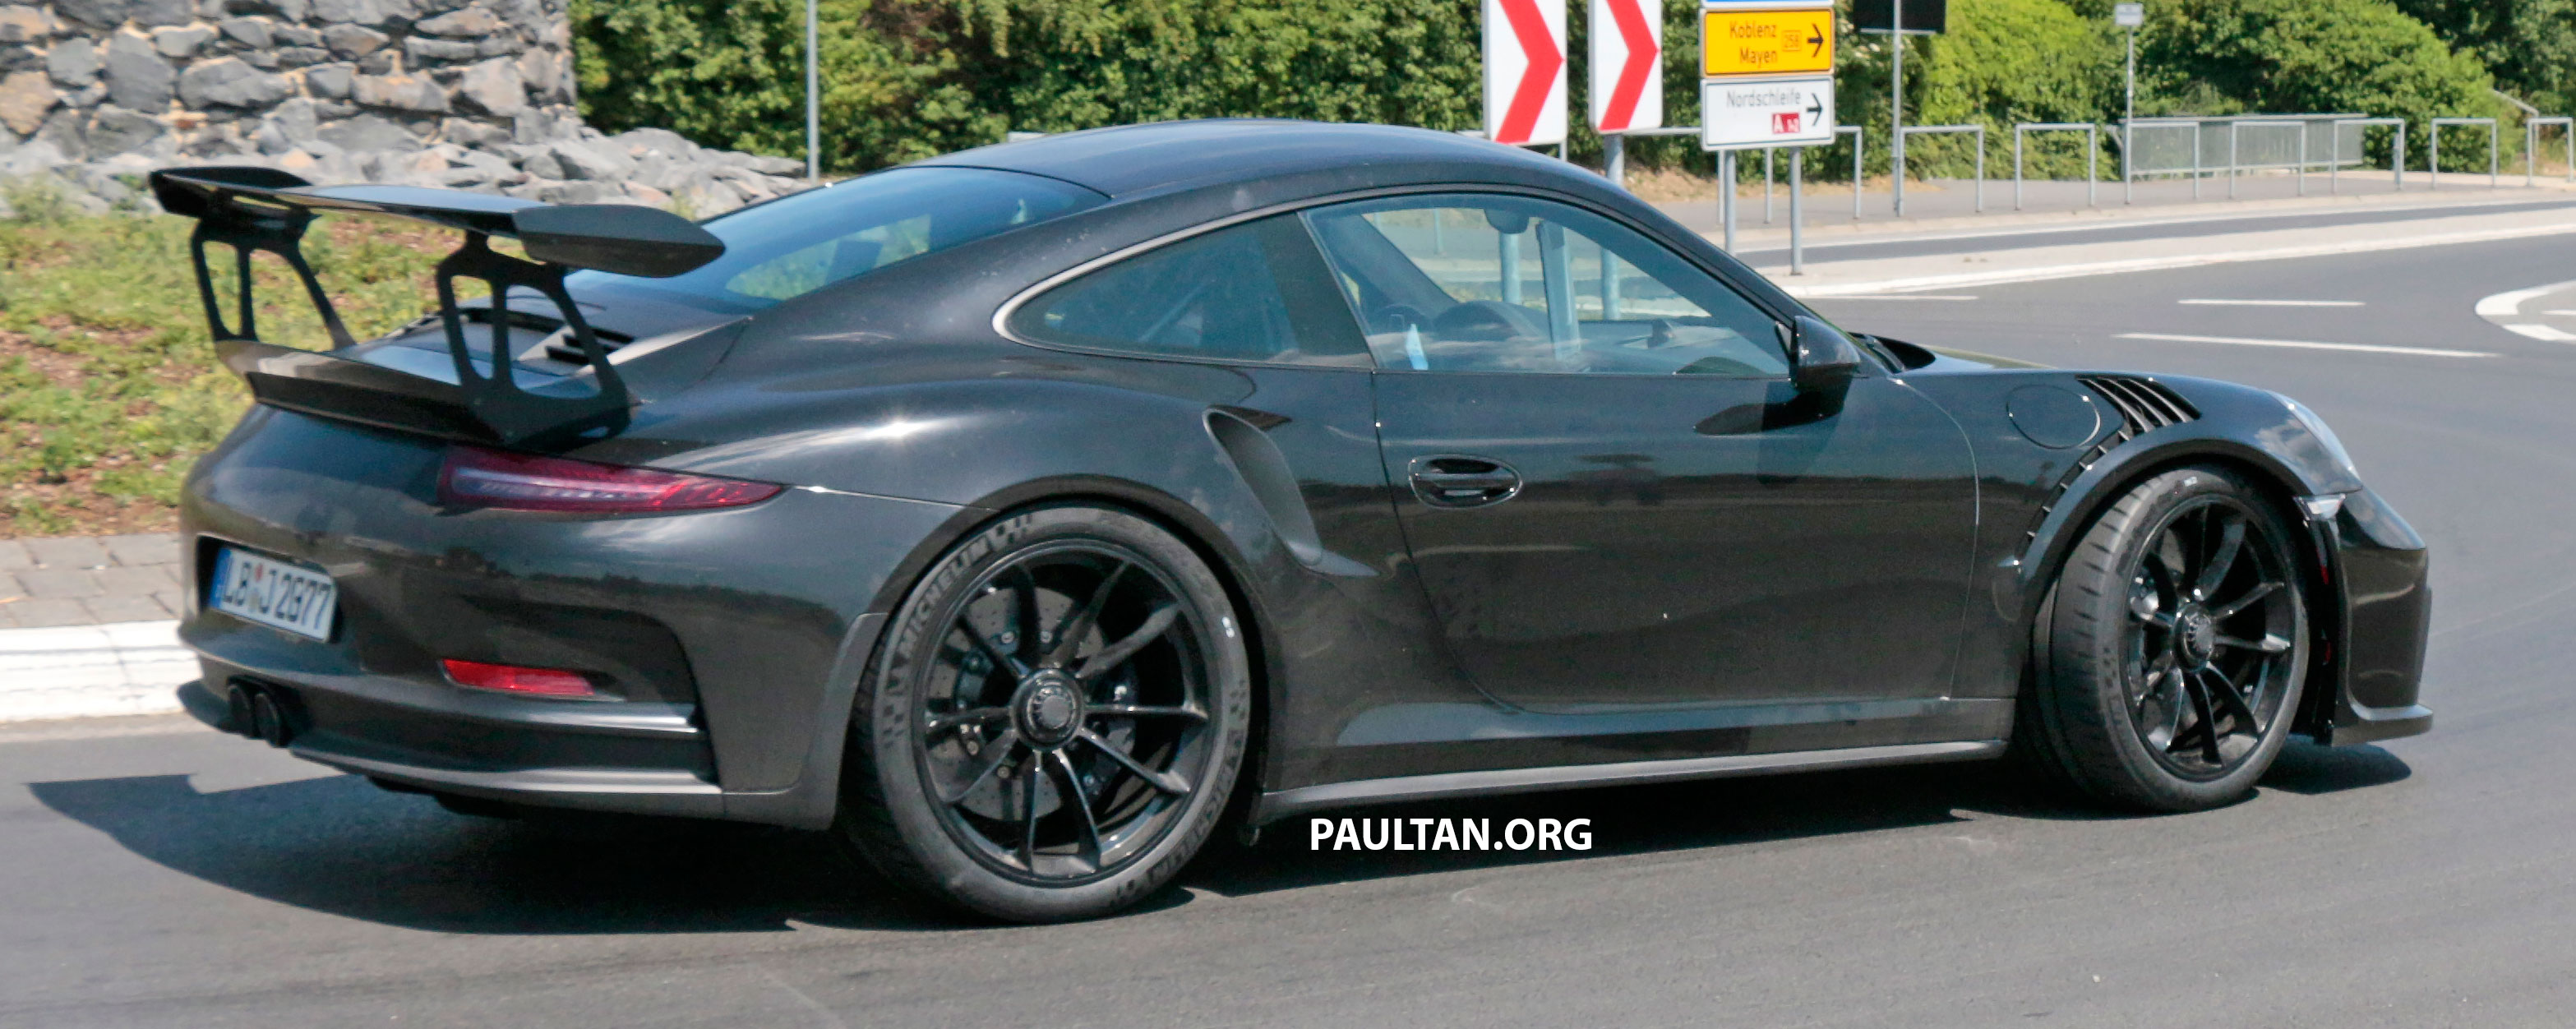 Spyshots 991 2 Porsche 911 Gt3 Rs Seen Testing Paul Tan Image 680269